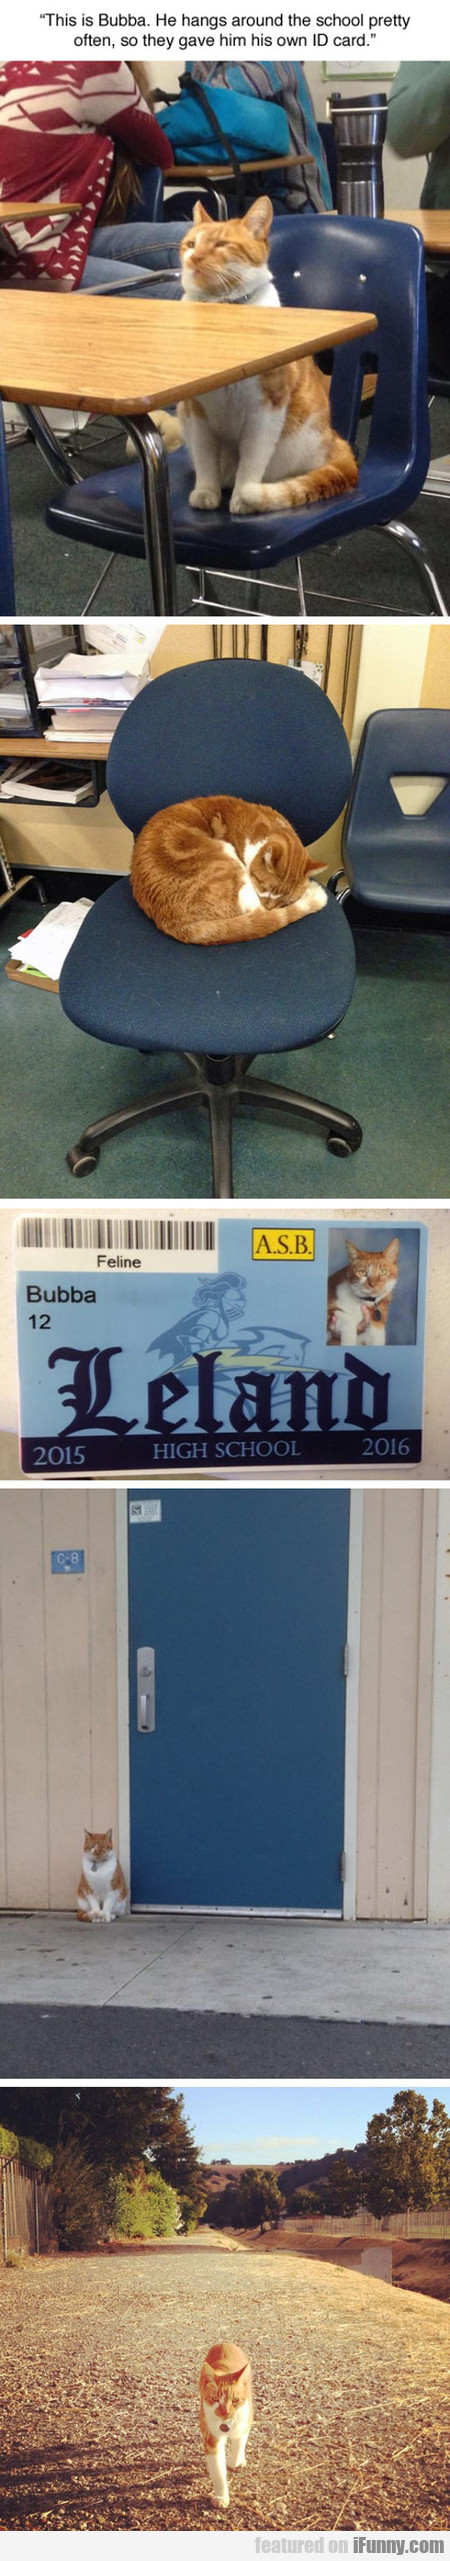 This Is Bubba and his own ID card